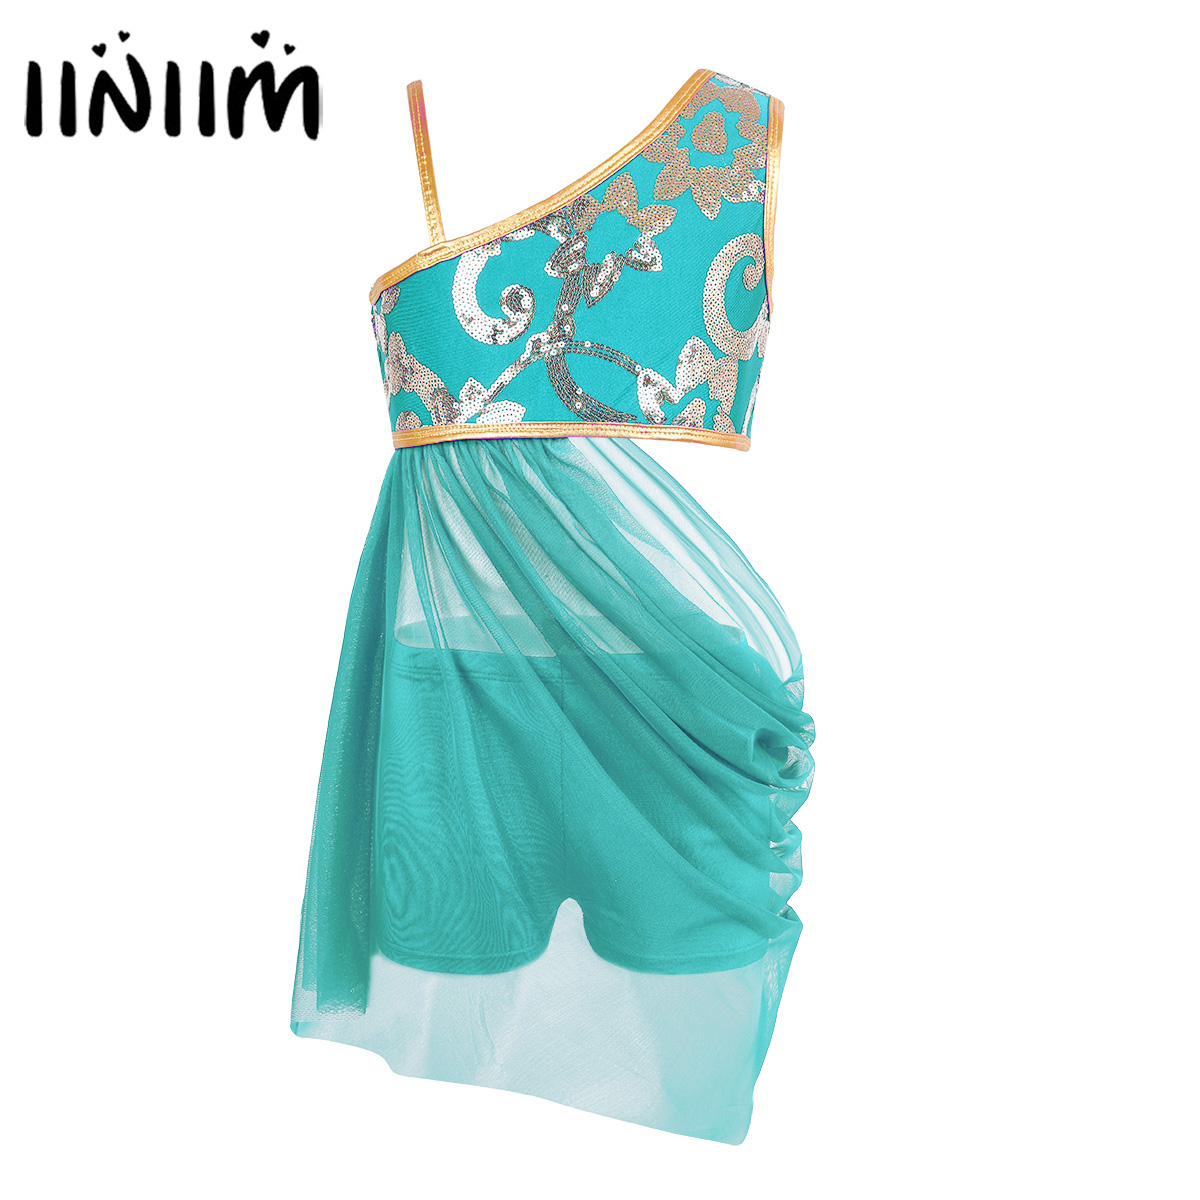 iiniim Girls Ballerina Floral Glitter Reflective Top Waist Open Drap Skirt with Separated Bottoms Lyrical Ballet Dance Costumes